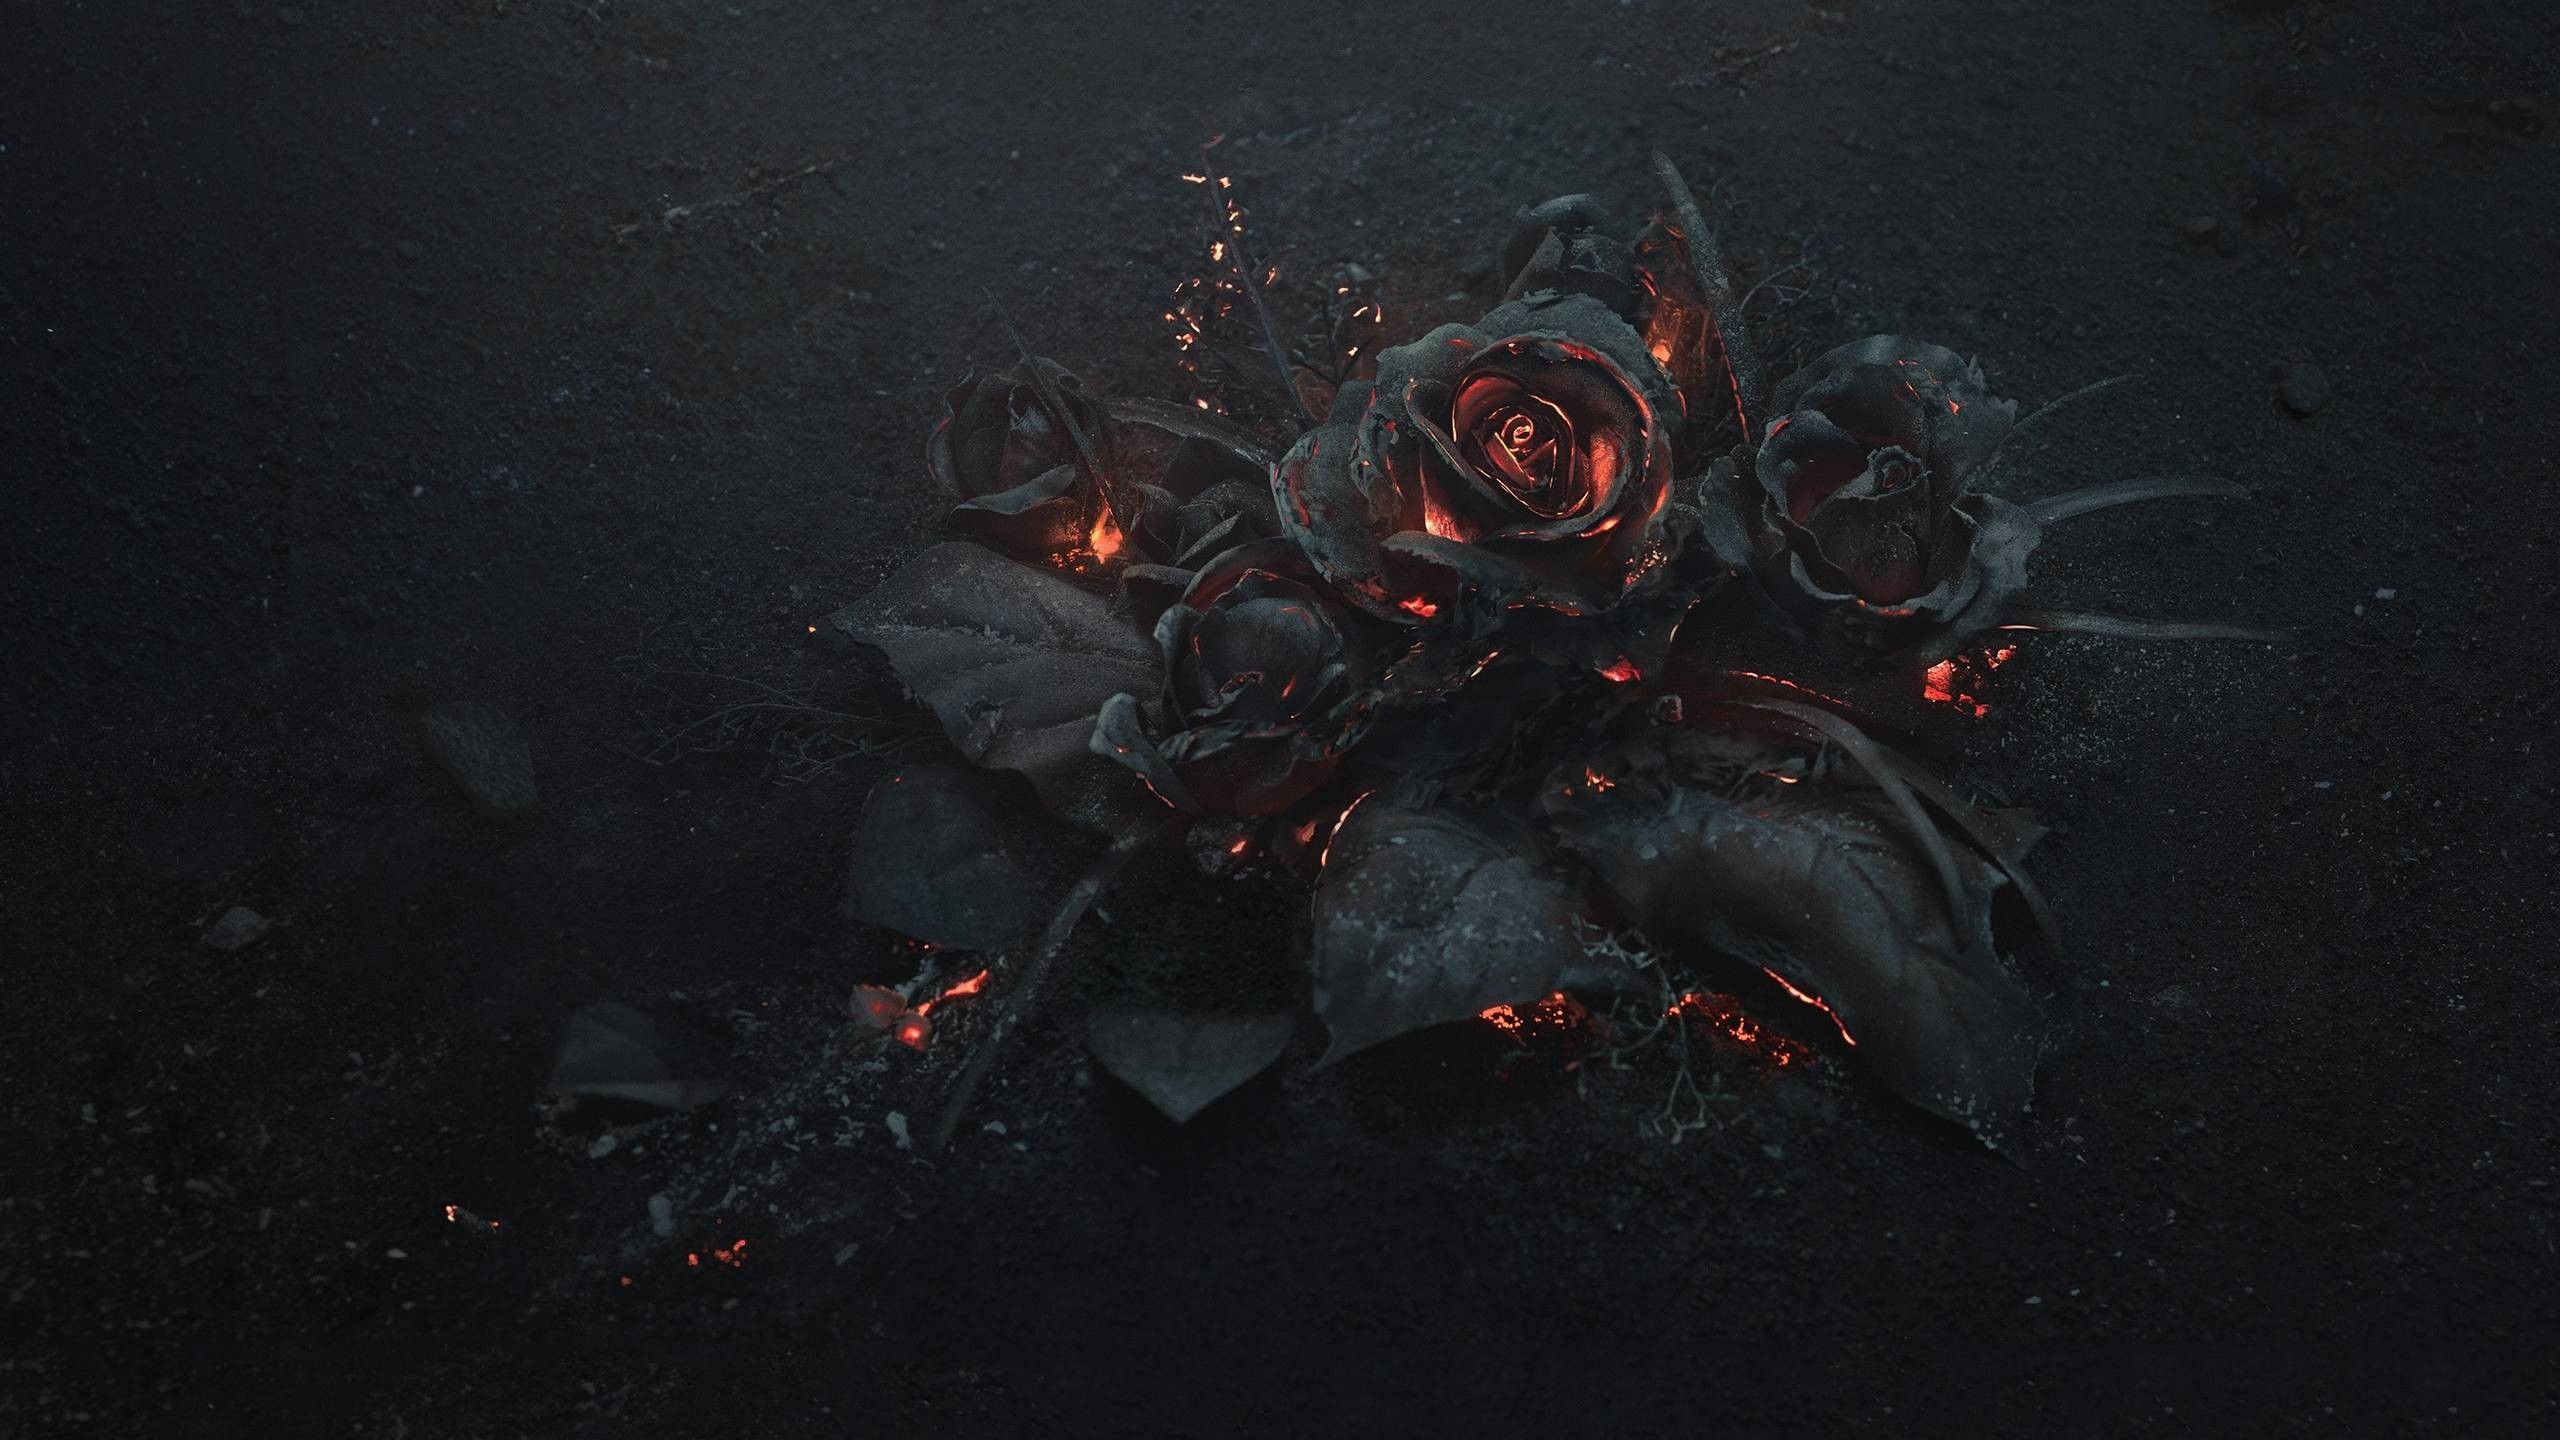 General flowers rose fire Gothic